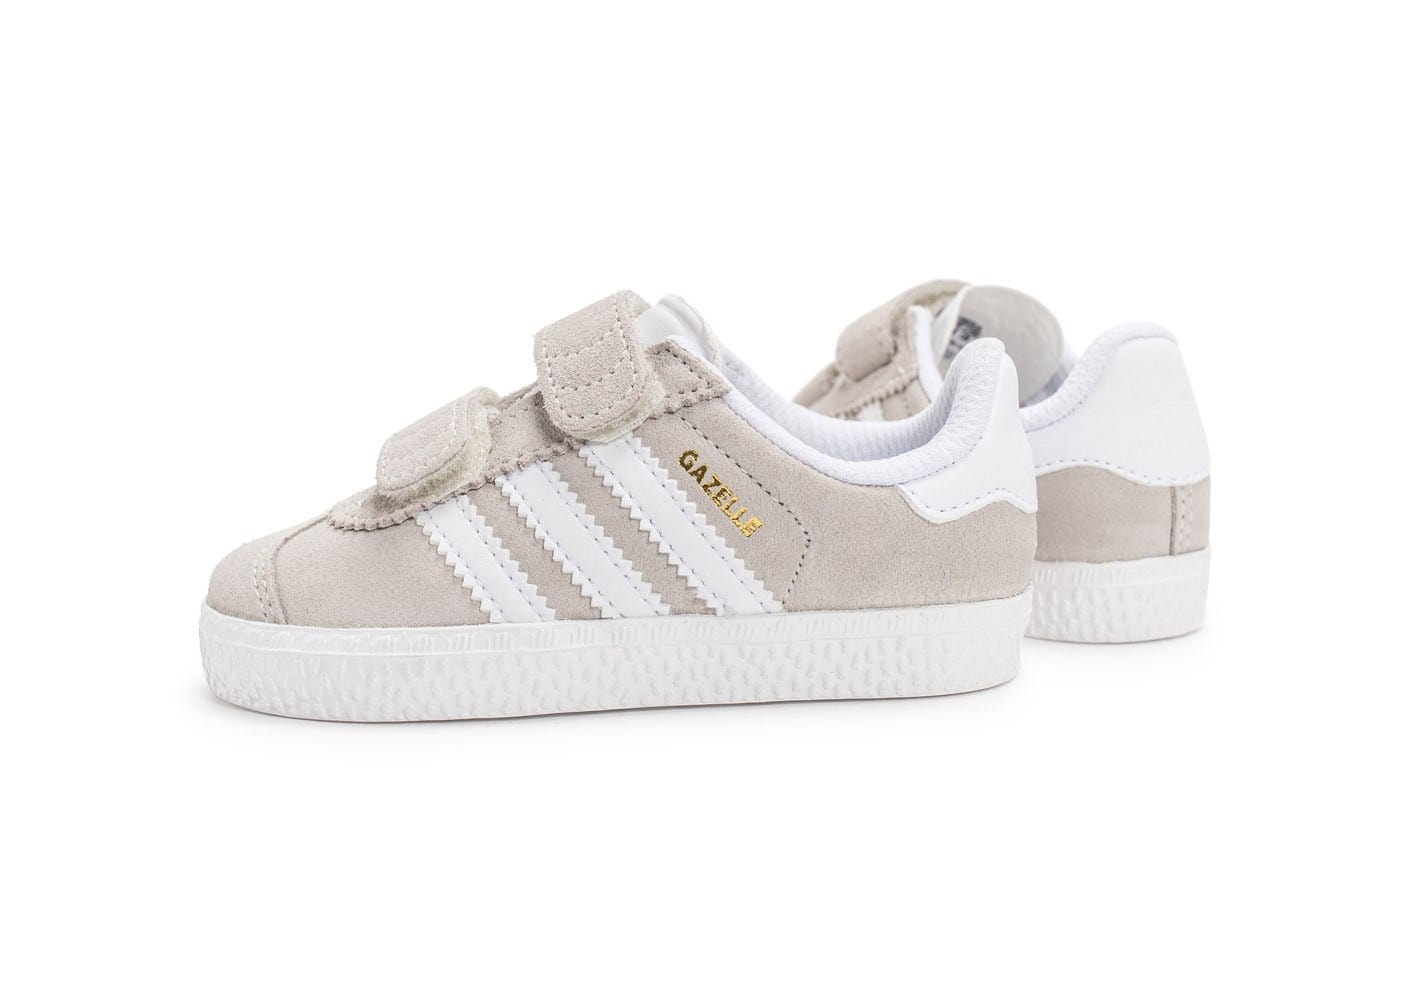 adidas gazelle 2 beige. Black Bedroom Furniture Sets. Home Design Ideas